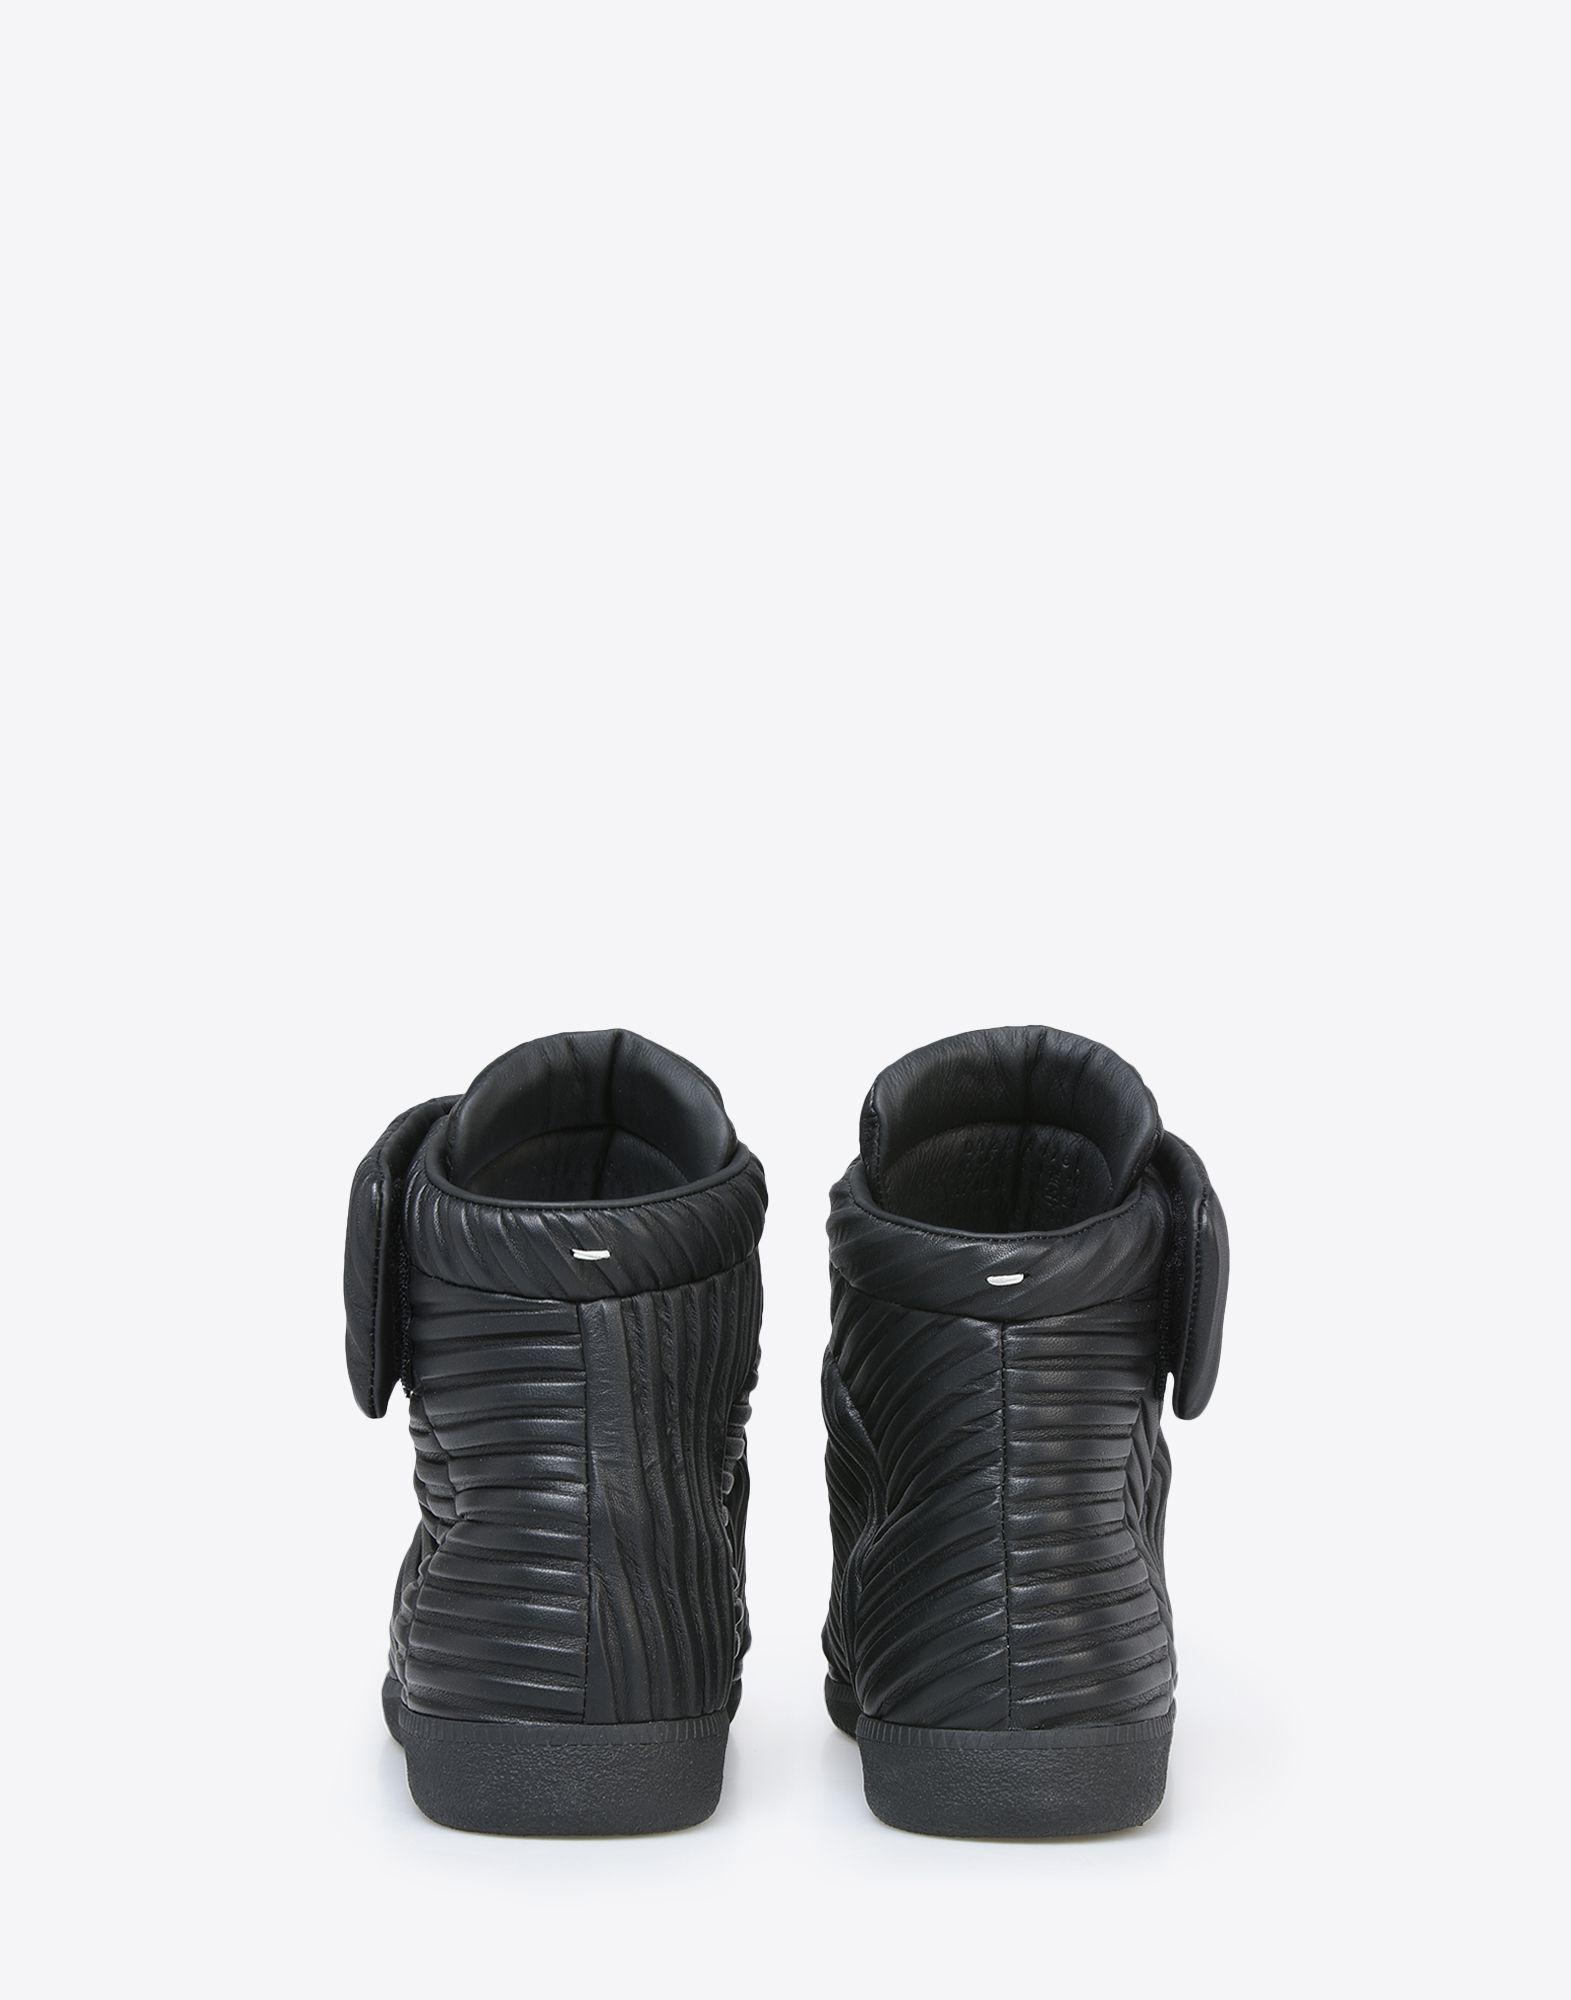 Maison Margiela Quilted Leather Future High Top Sneakers in Black